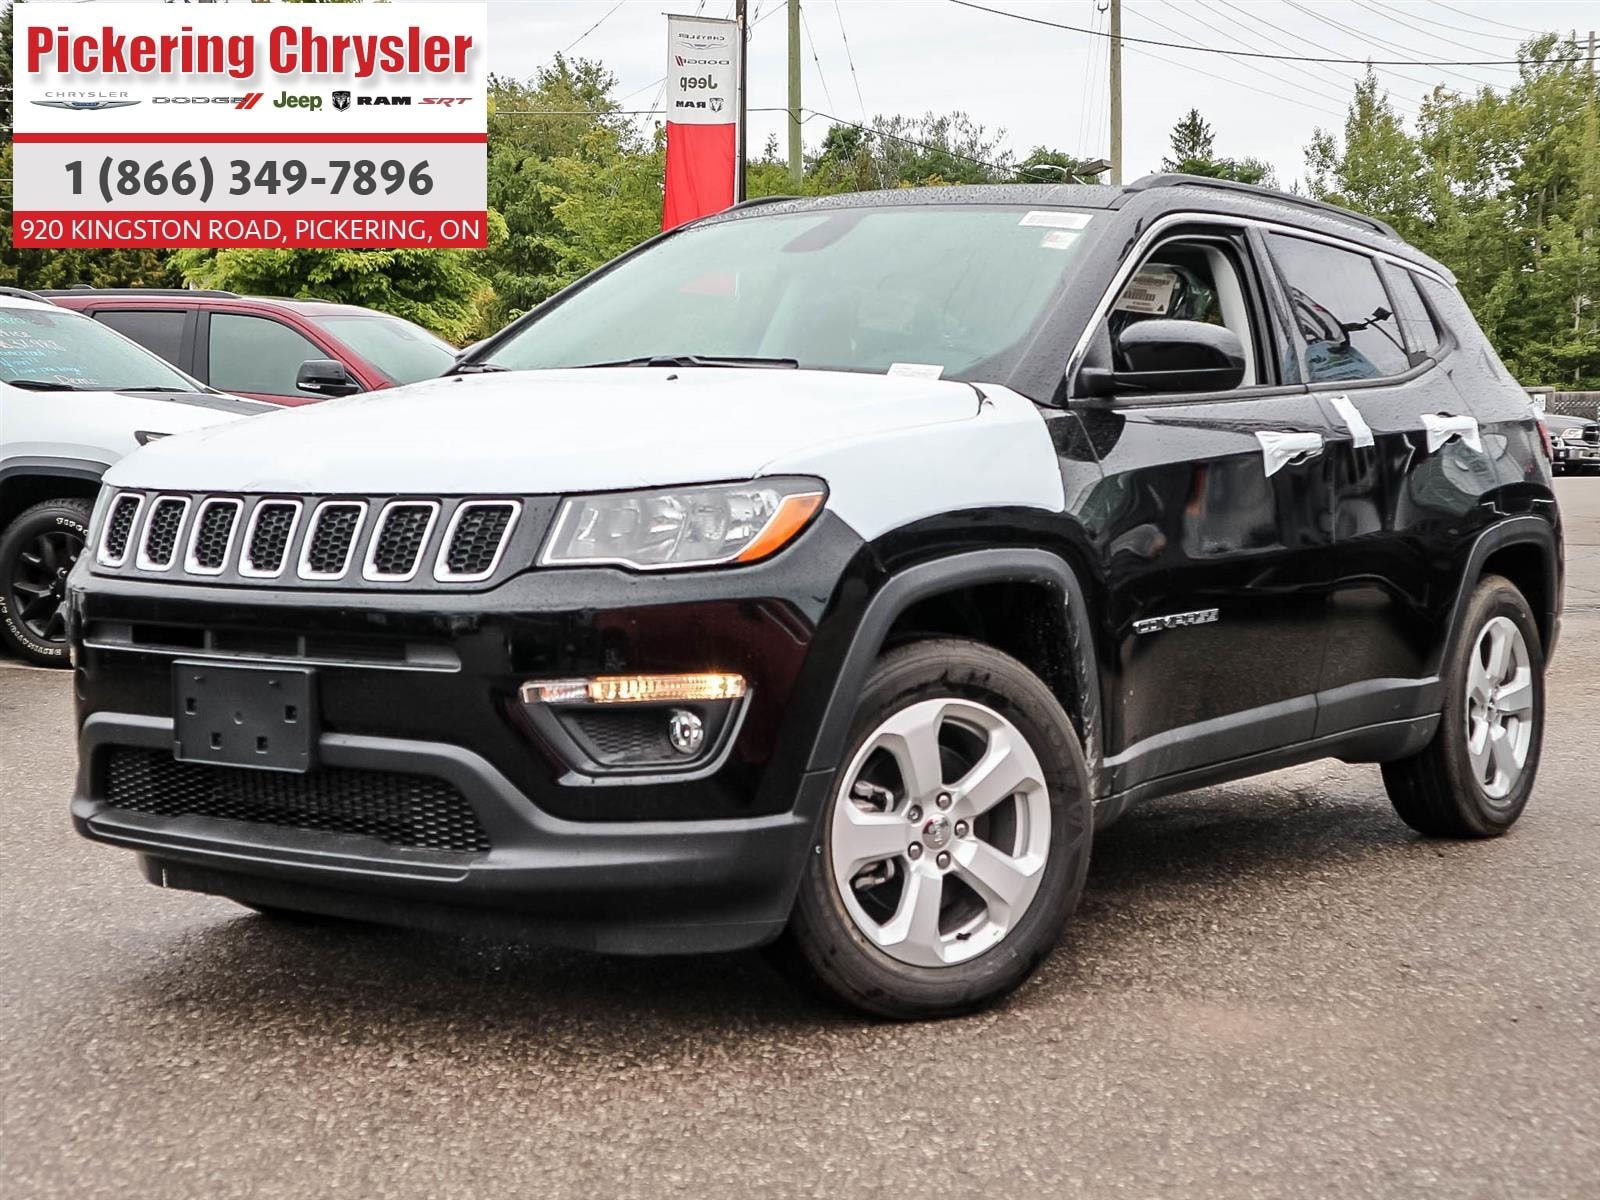 2019 Jeep Compass NAVI PANORAMIC ROOF COLD WEATHER GROUP SUV